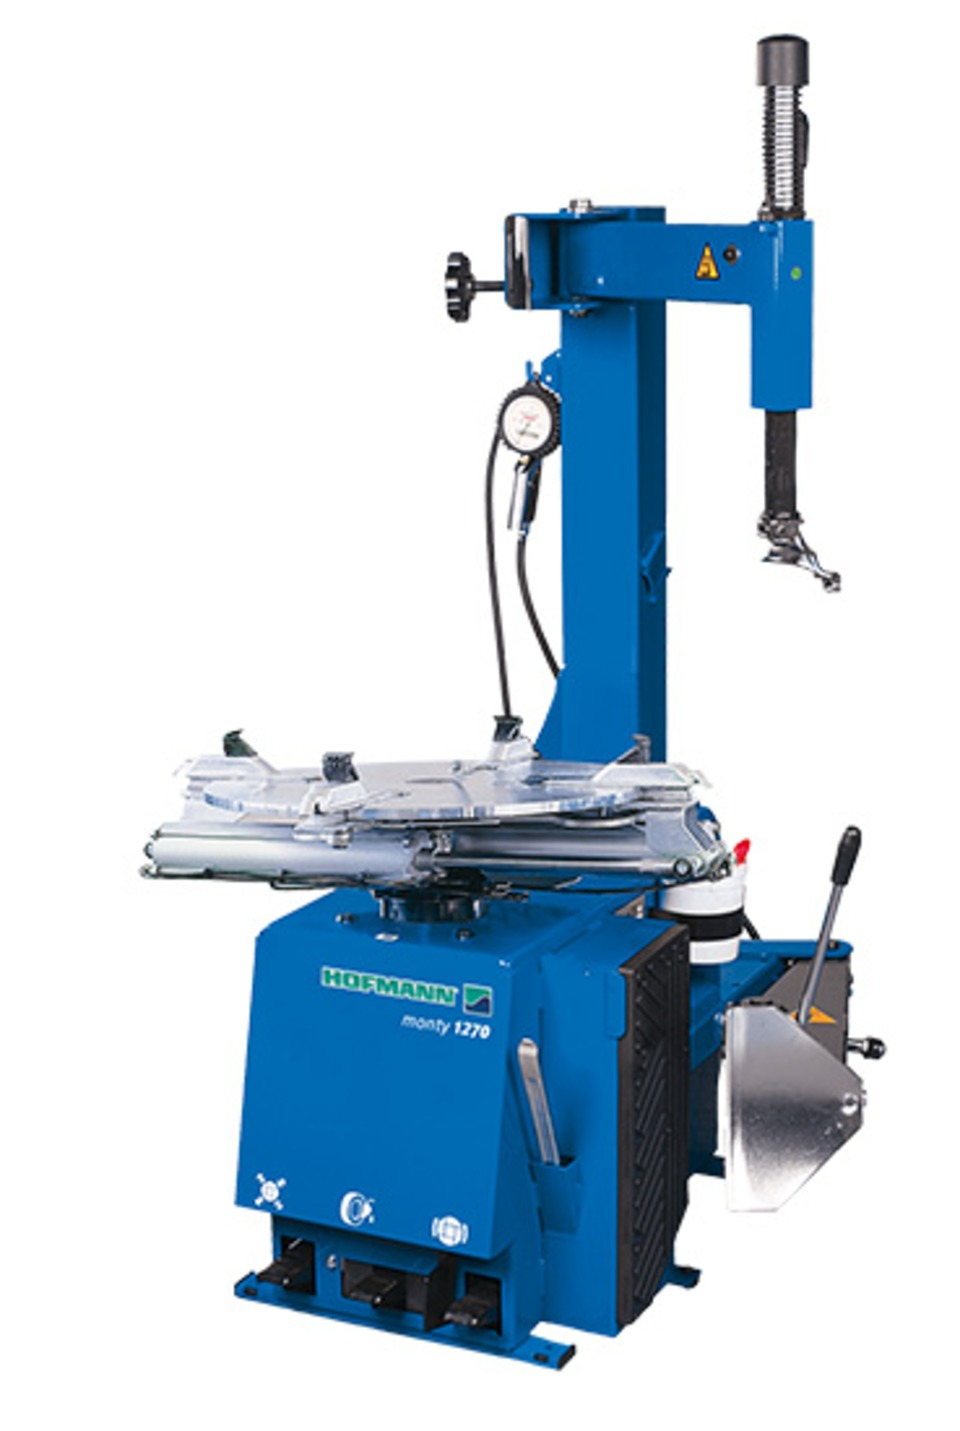 hofmann usa monty 1270 tire changer in tire changers rh vehicleservicepros com hofmann monty 3200 manual hofmann monty 1610 manual